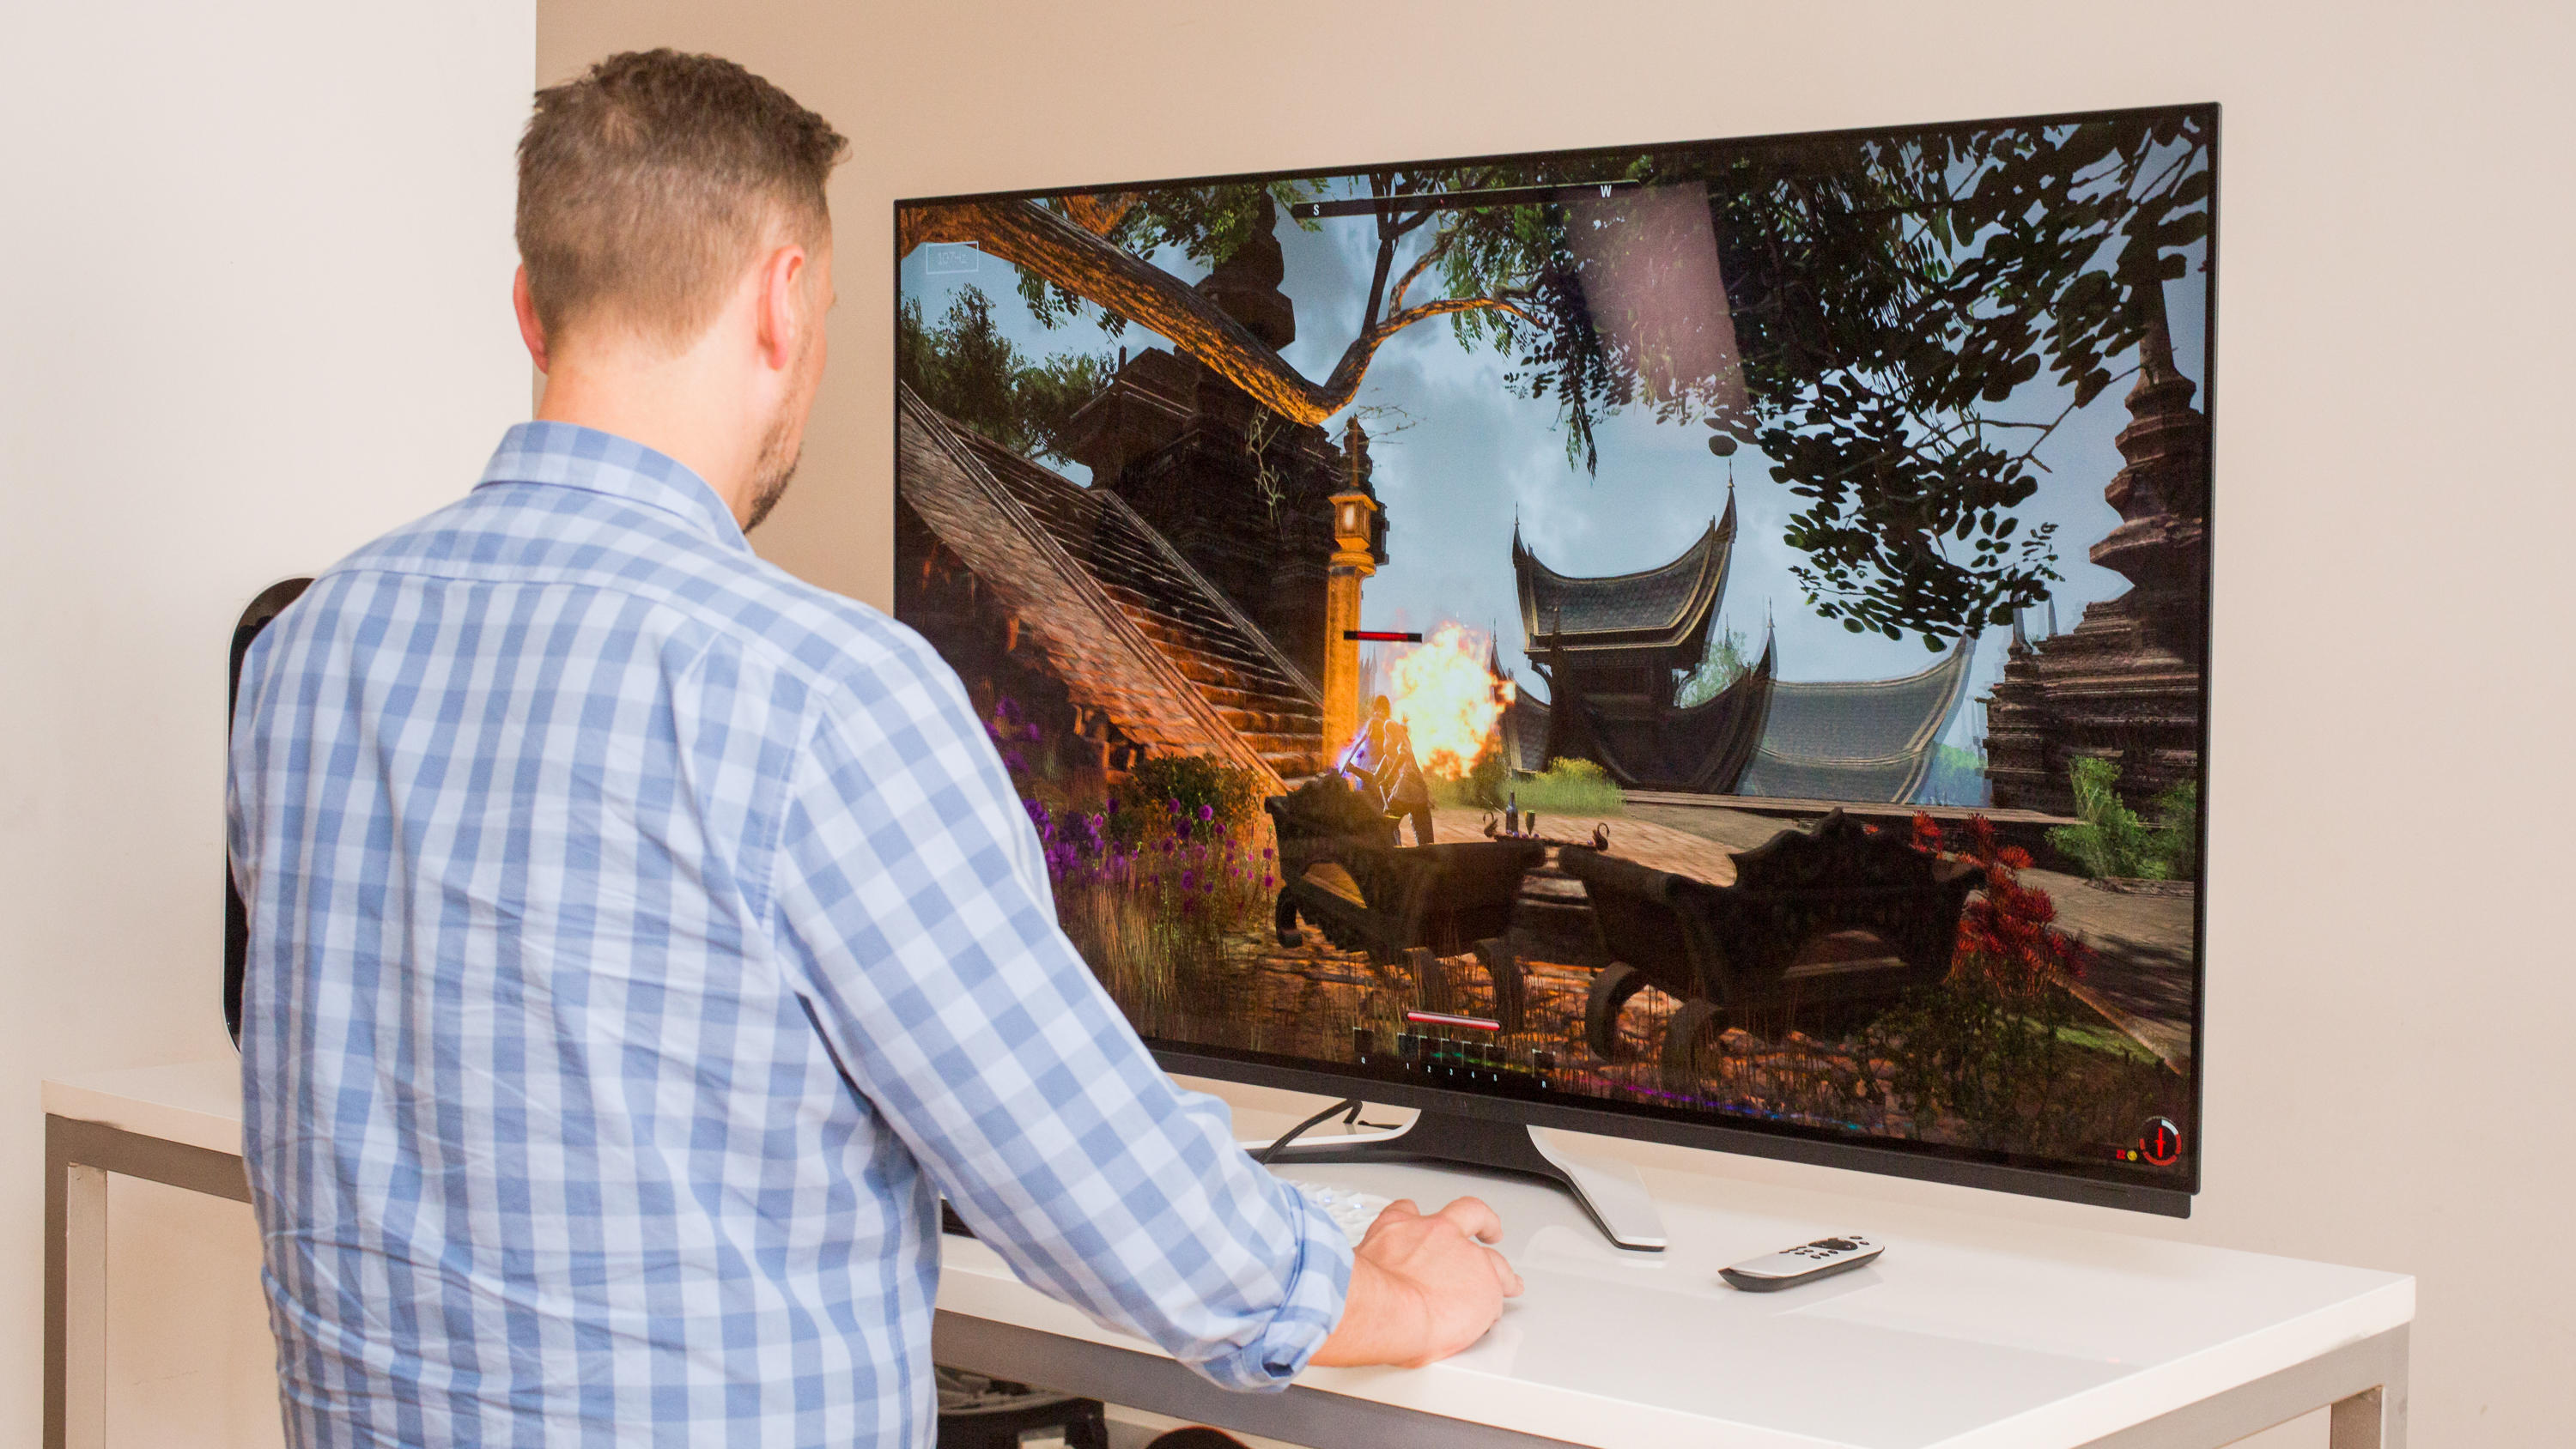 10-alienware-55-oled-gaming-monitor